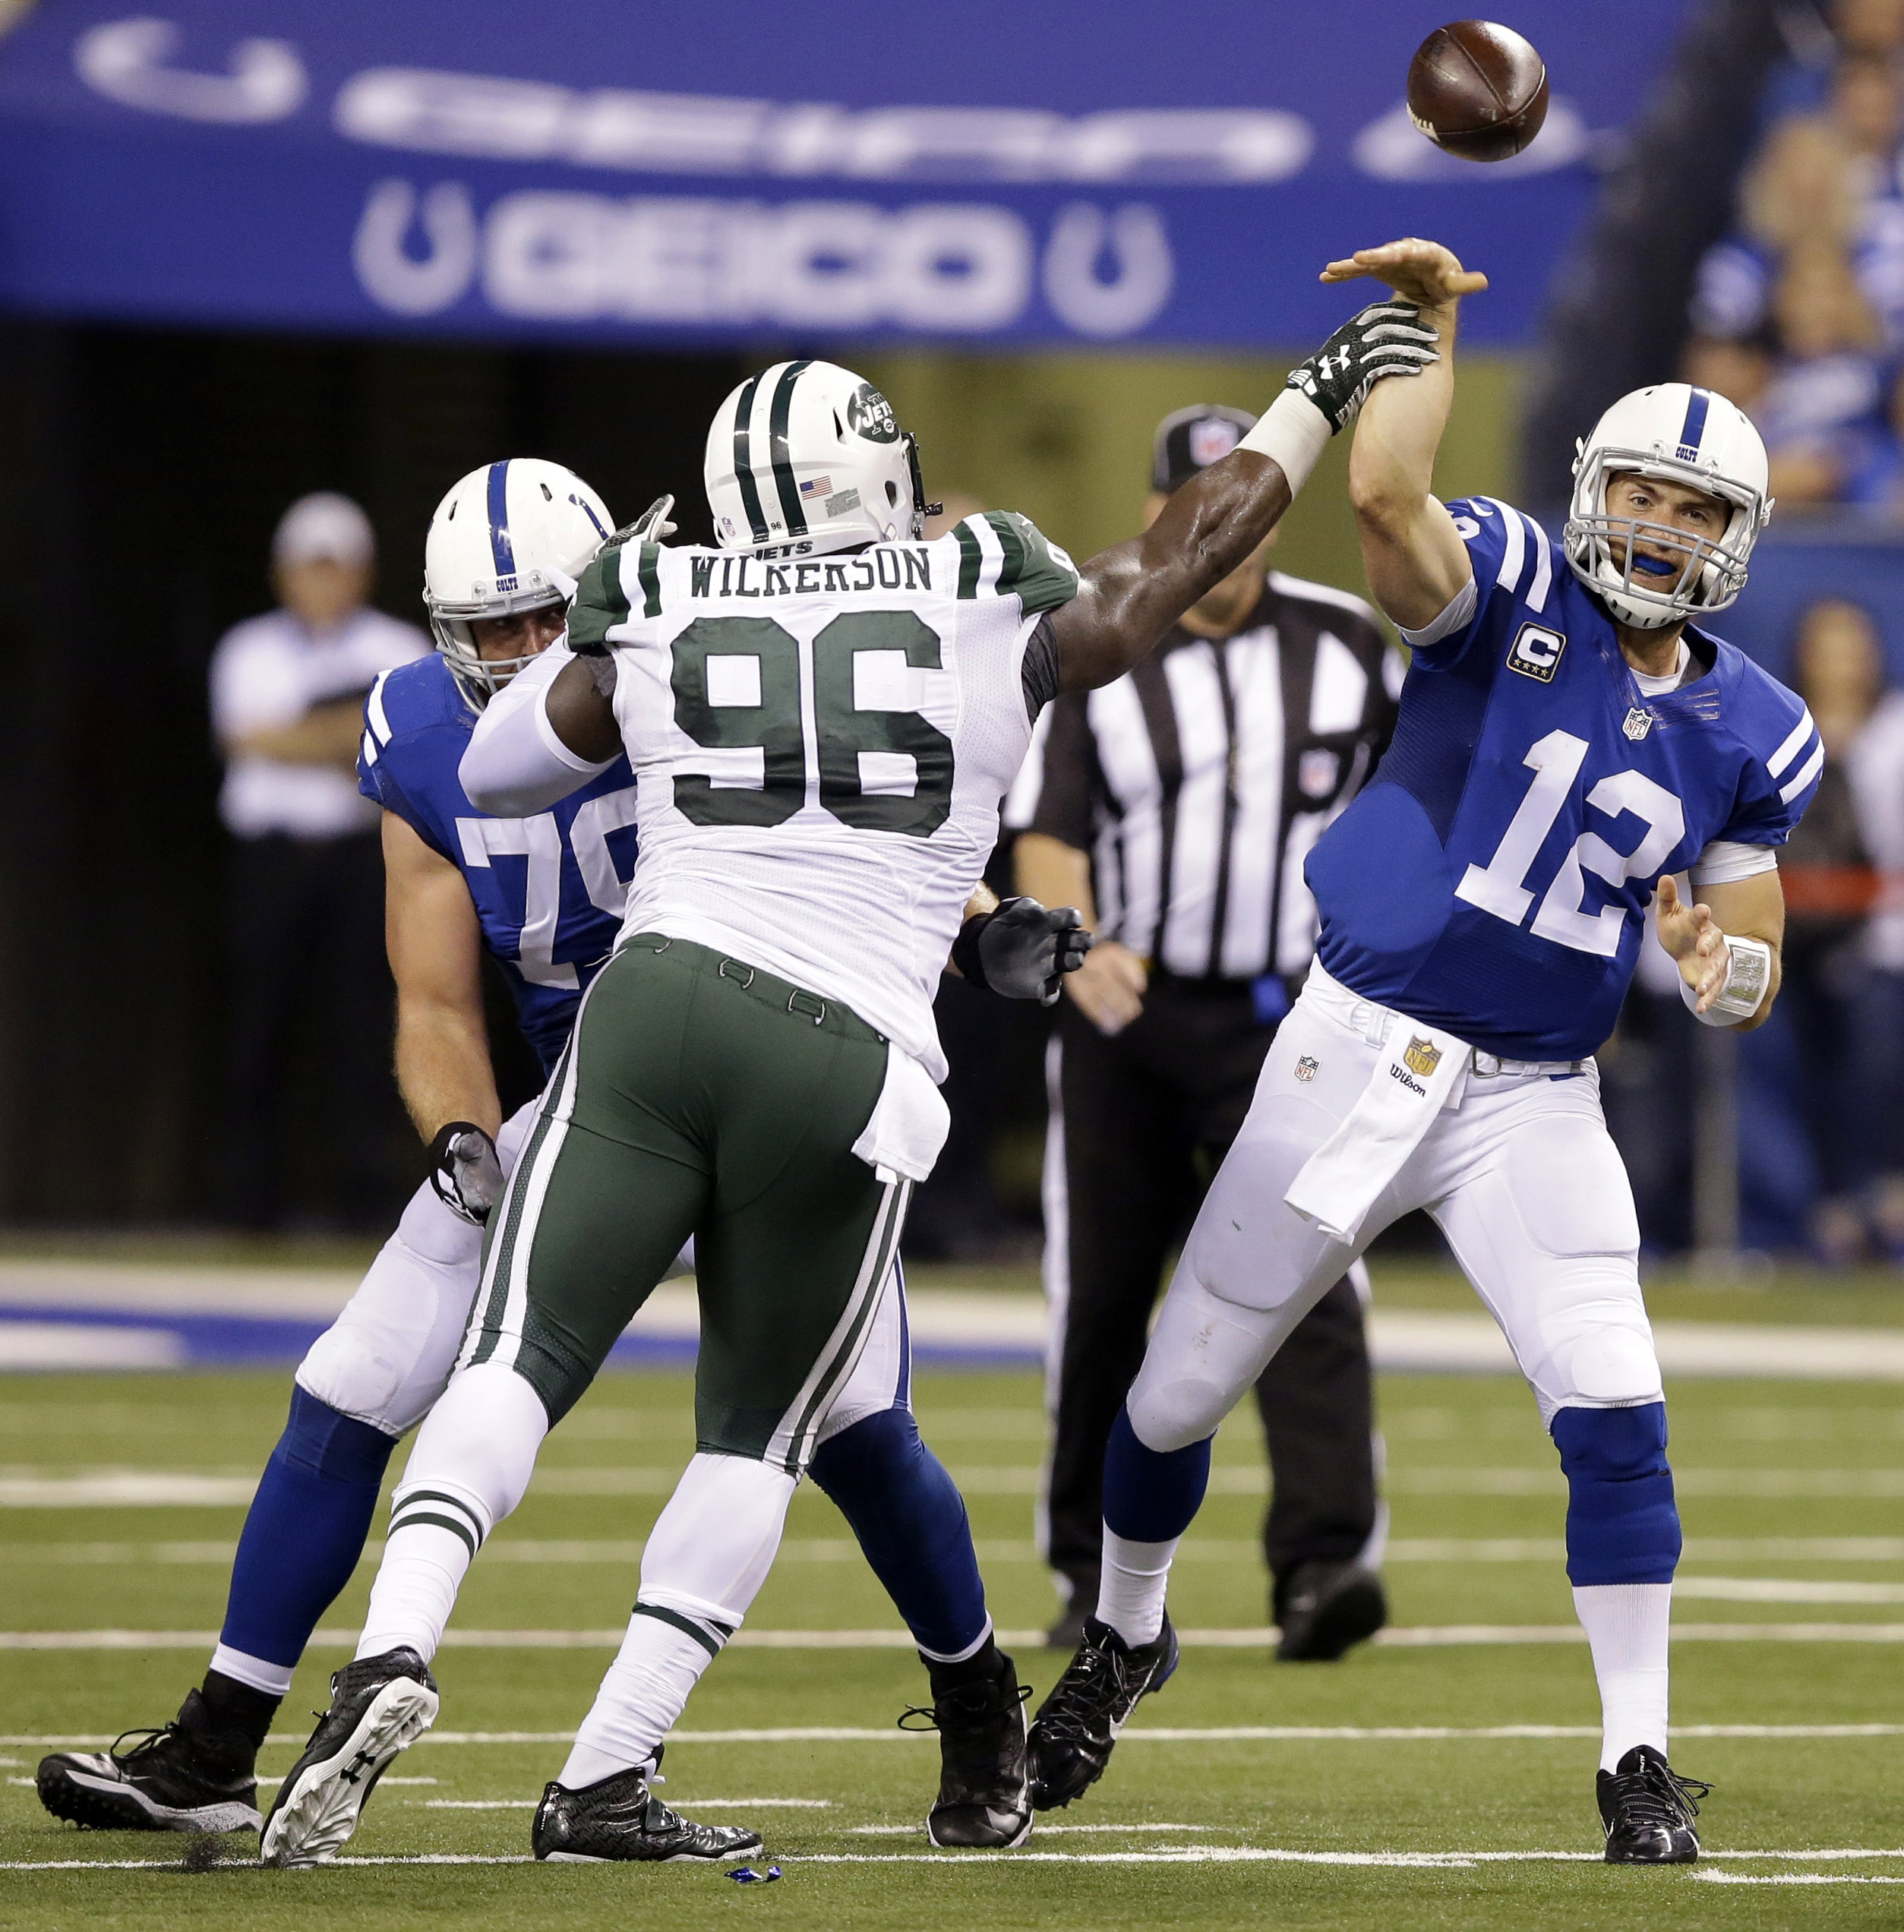 Indianapolis Colts quarterback Andrew Luck (12) is hit by New York Jets defensive end Muhammad Wilkerson (96) as he throws during the second half of an NFL football game in Indianapolis, Monday, Sept. 21, 2015. (AP Photo/Darron Cummings)